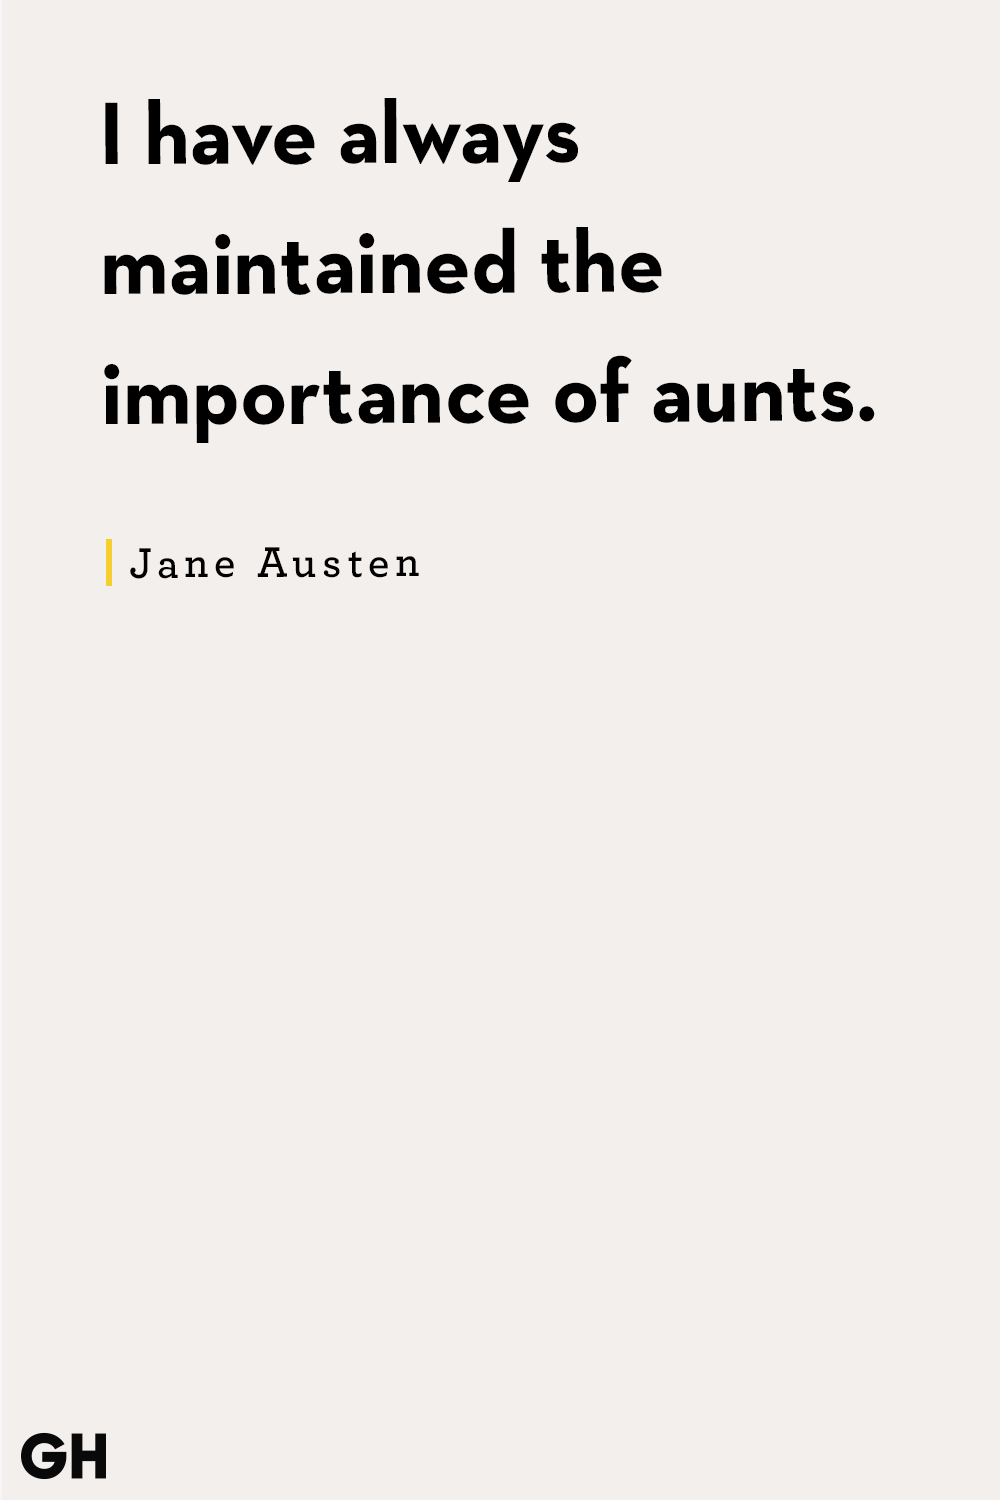 23 Best Aunt Quotes - Aunt Quotes From Niece and Nephew